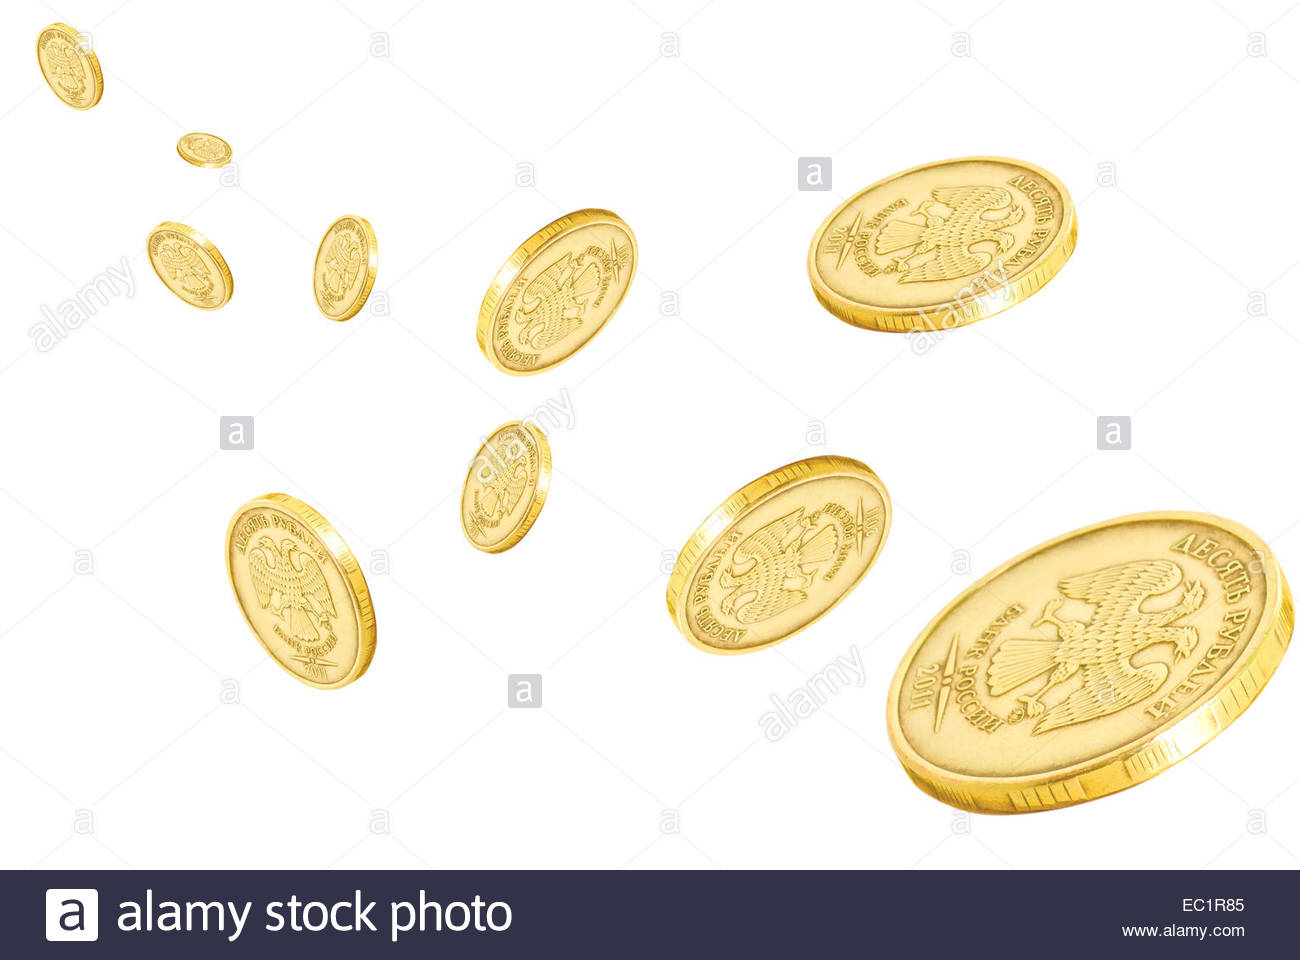 Collage with coins on a white background. - Stock Image